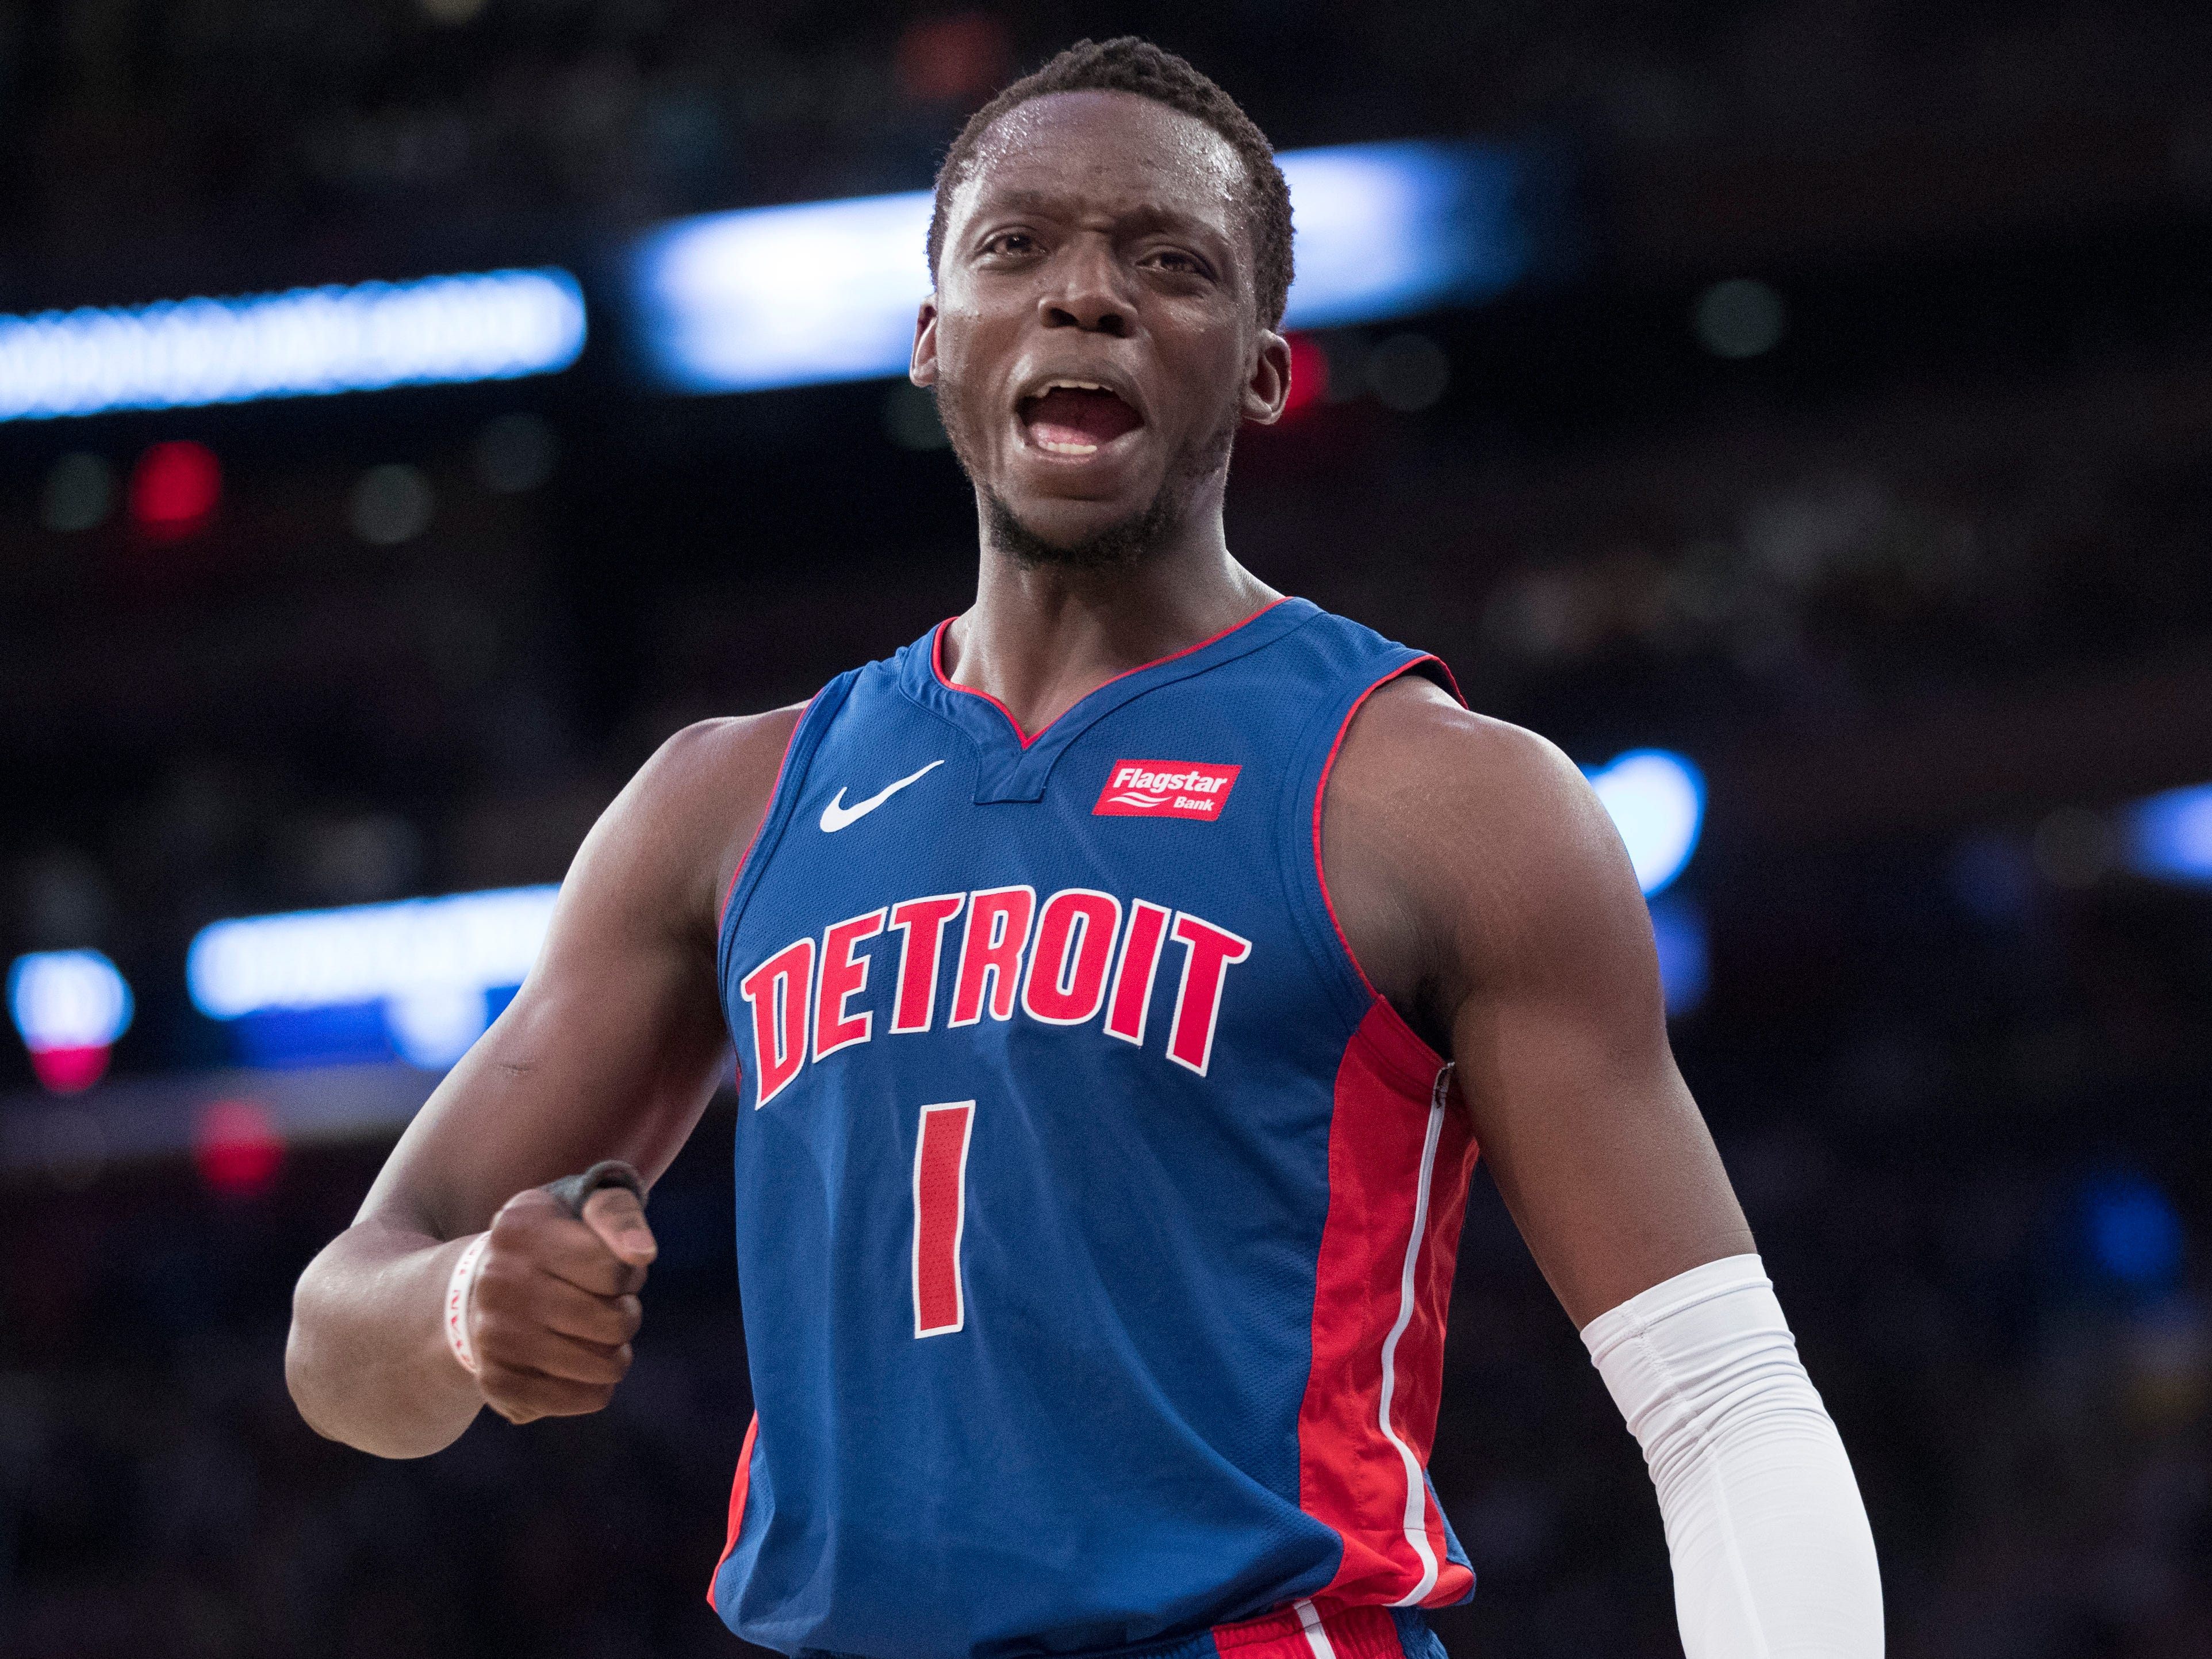 Detroit Pistons guard Reggie Jackson reacts during the first half of the team's NBA basketball game against the New York Knicks, Wednesday, April 10, 2019, at Madison Square Garden in New York.